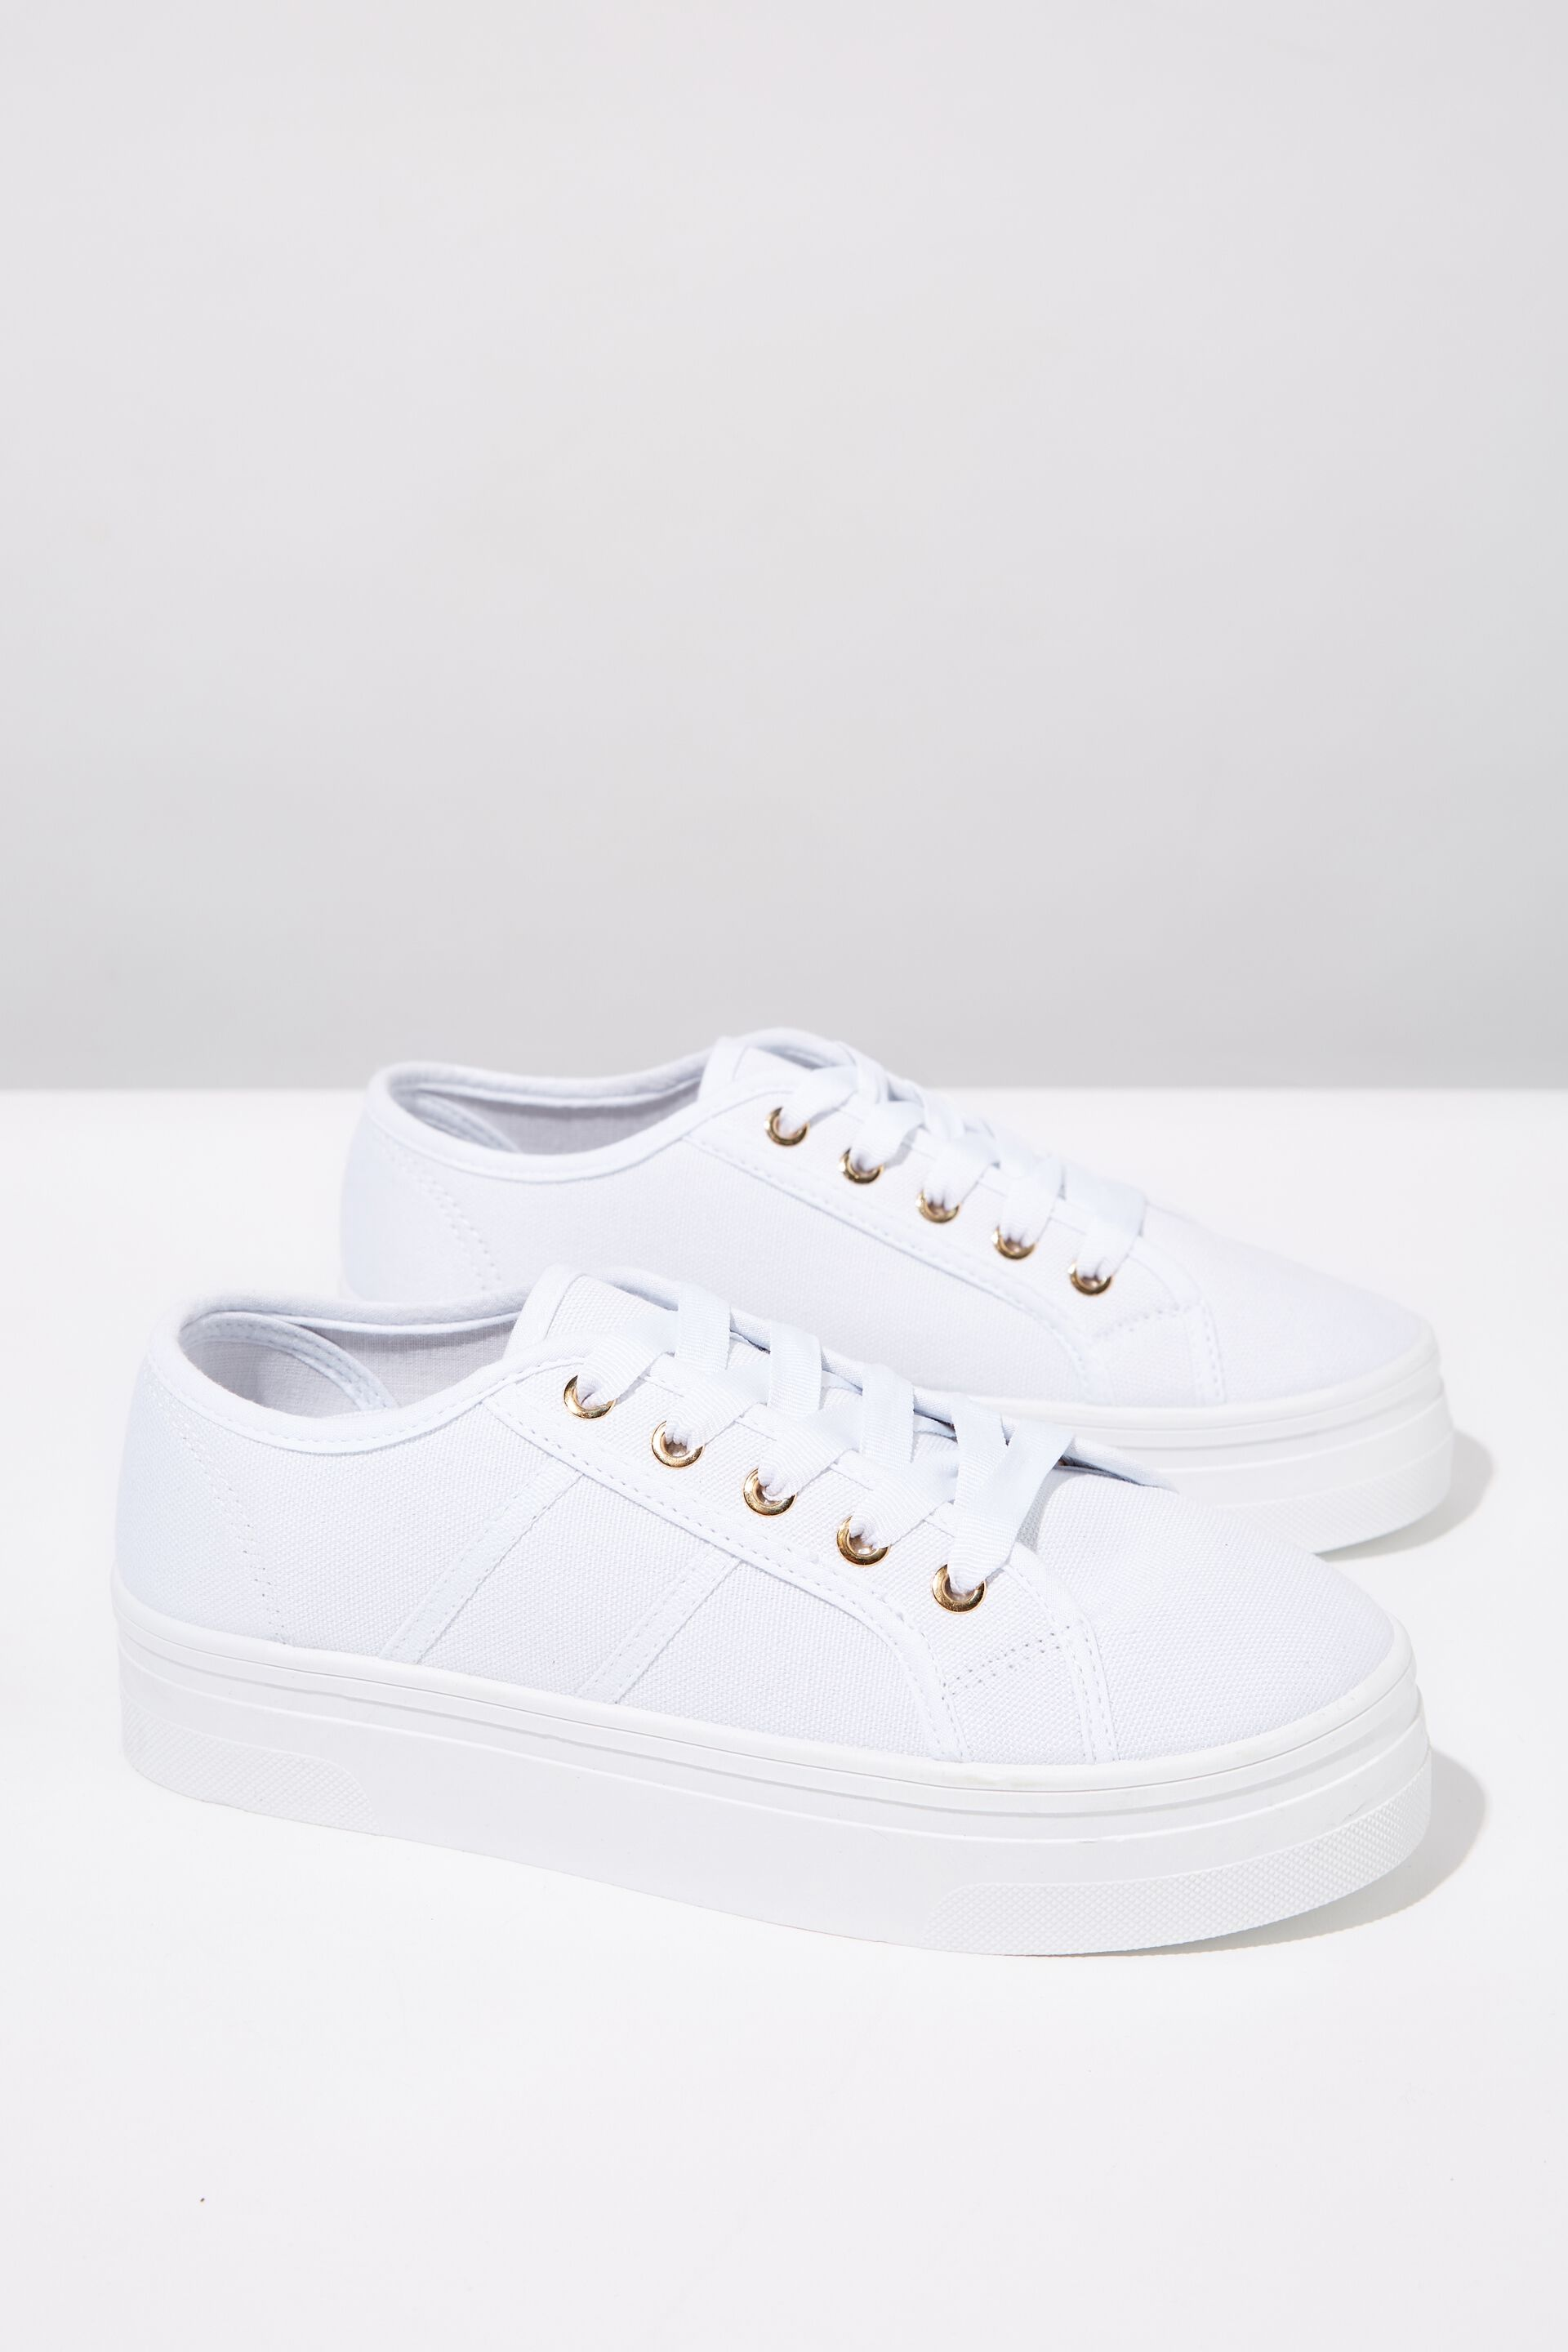 shoes, converse, white shoes, red stripe, jeans Wheretoget